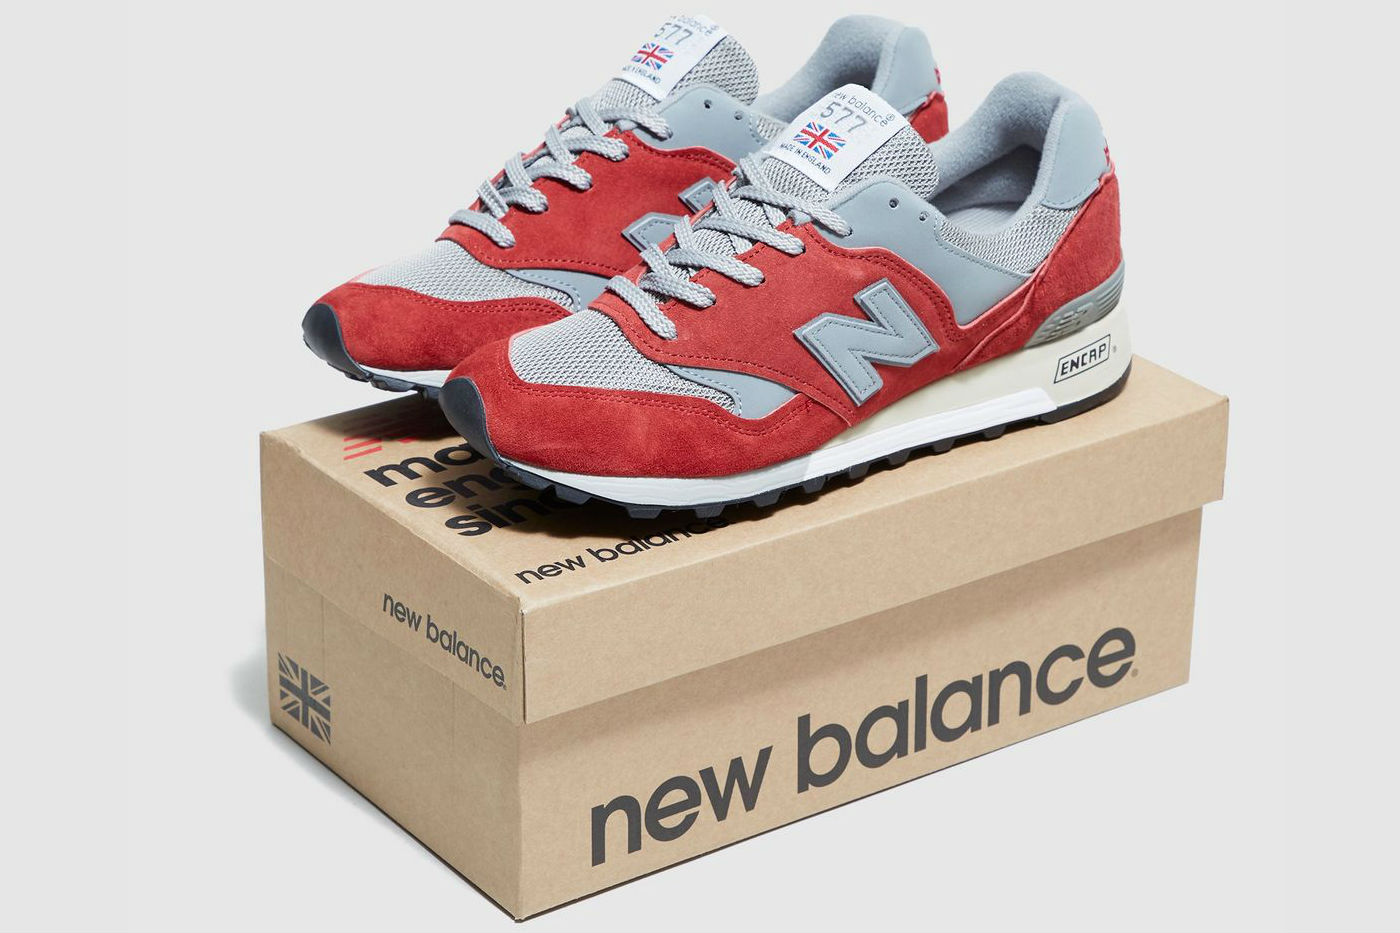 New Balance 577 Suede Takes on a Red